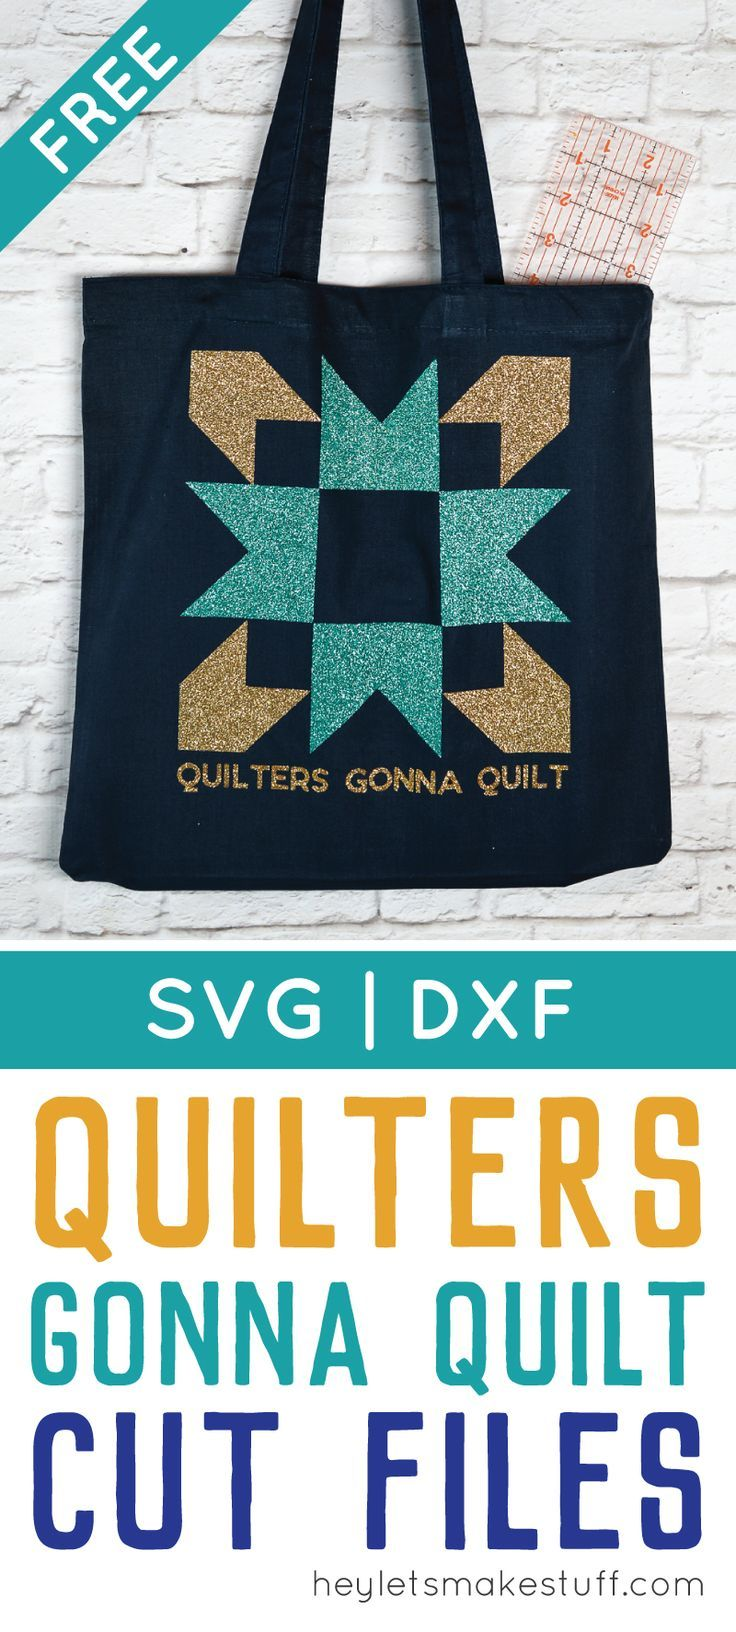 228 Best Quilts Images On Pinterest Sewing Projects